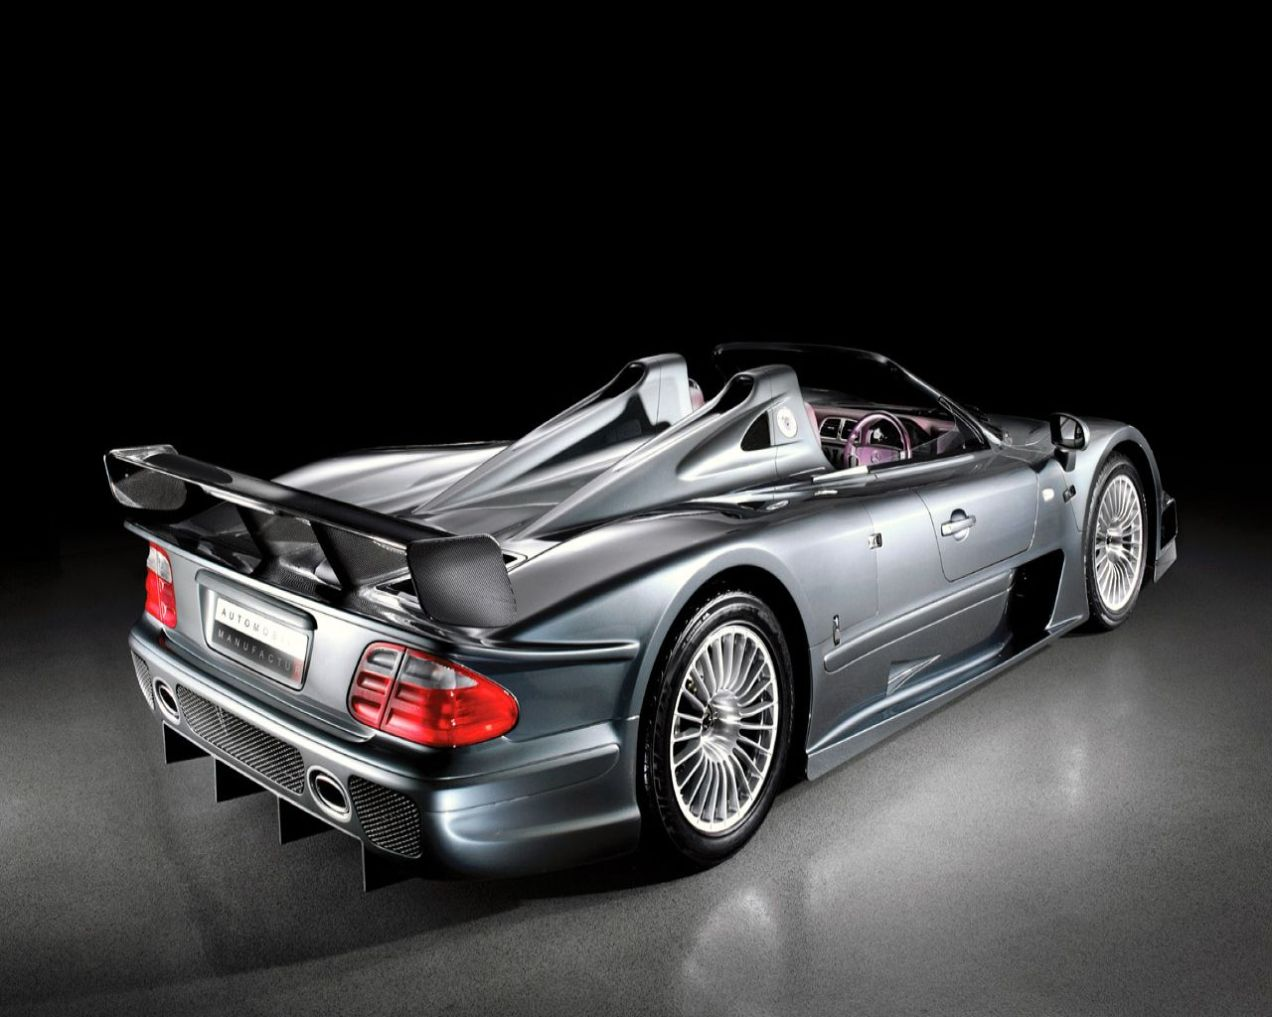 mercedes-benz-clk-gtr-coupe-and-roadster_1280x1024_72432